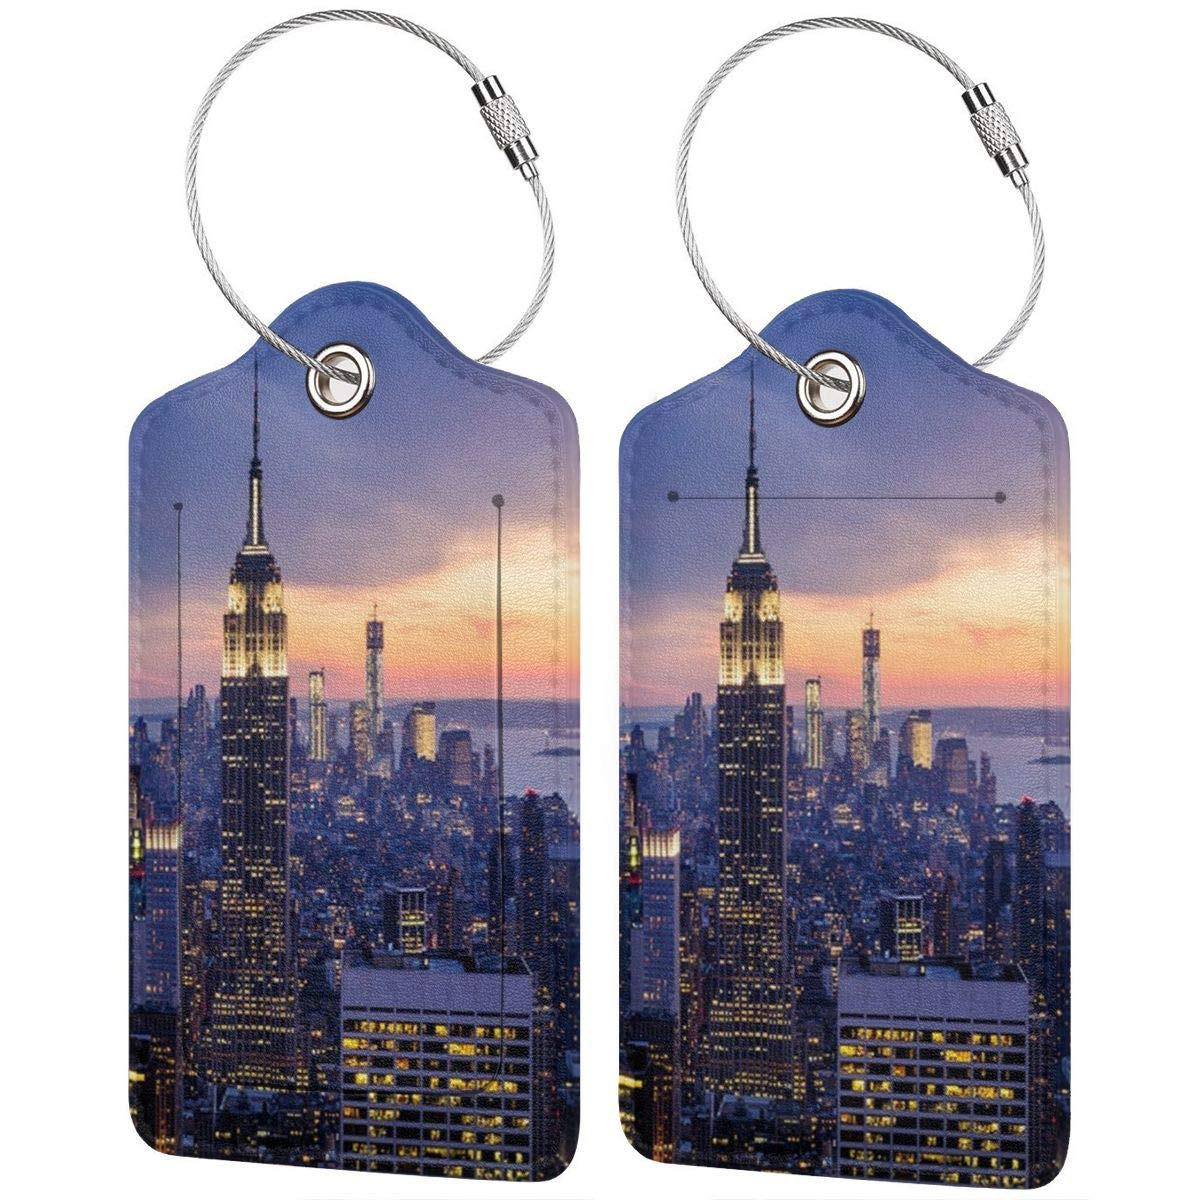 Modern Home Decor Tapestry NYC York City Landscape Leather Luggage Tags Personalized Travel Accessories With Adjustable Strap